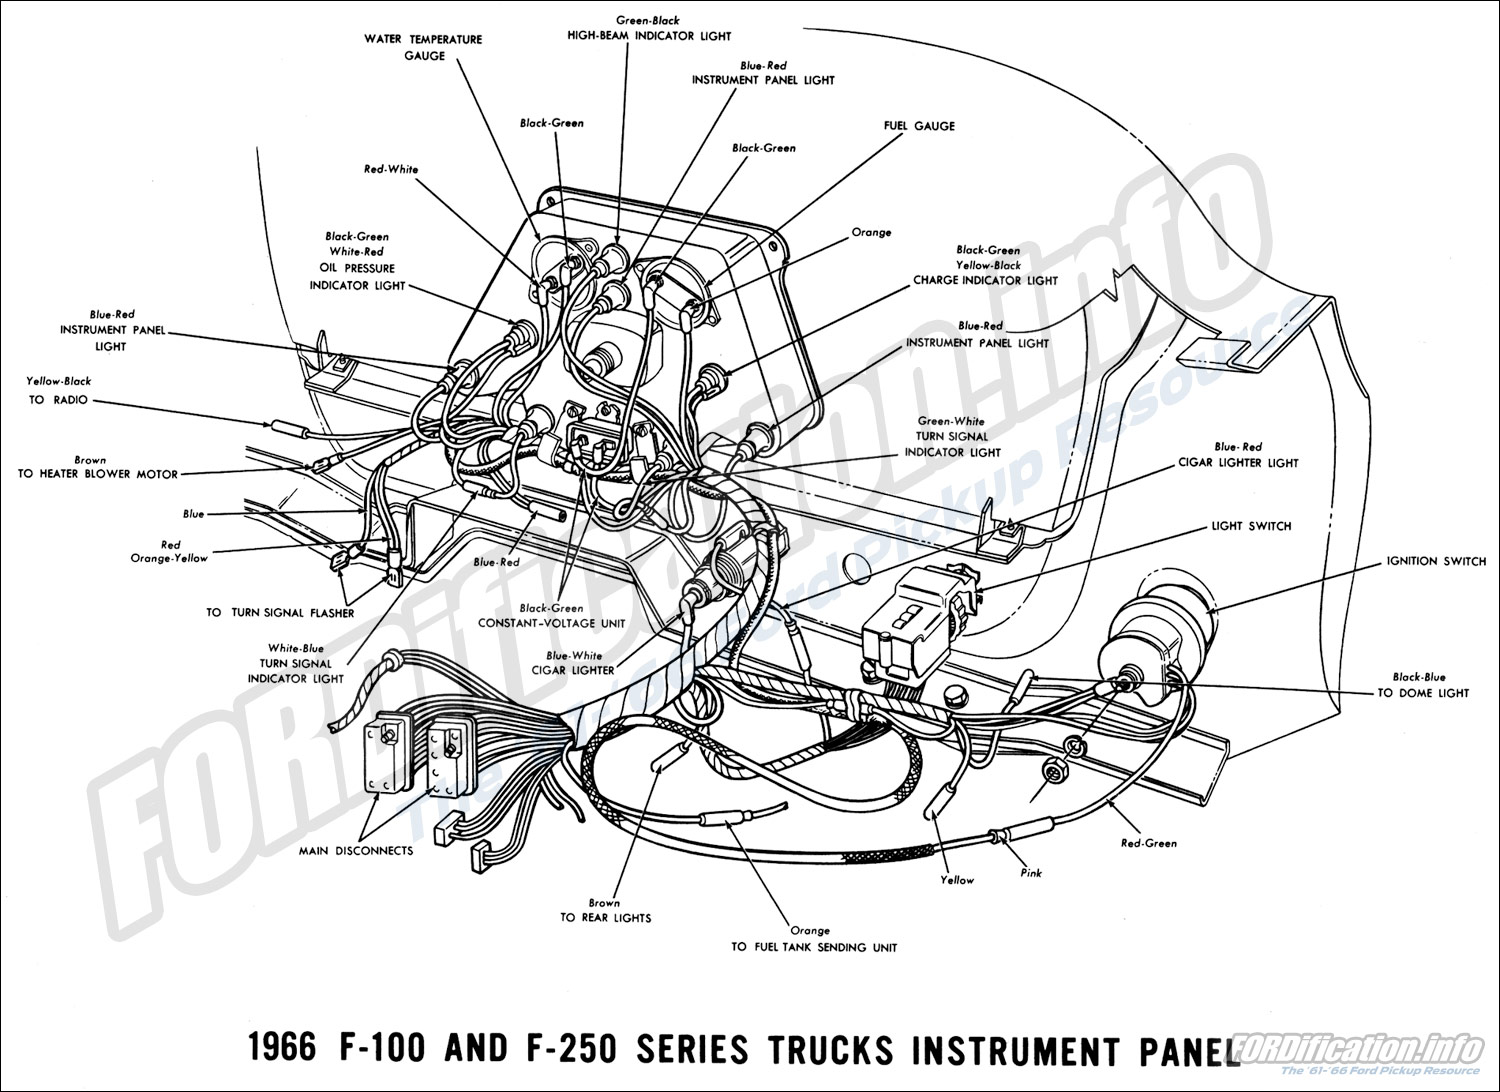 [WLLP_2054]   1966 Ford Truck Wiring Diagrams - FORDification.info - The '61-'66 Ford  Pickup Resource | 1966 Ford F100 Blinker Switch Wiring |  | FORDification.info